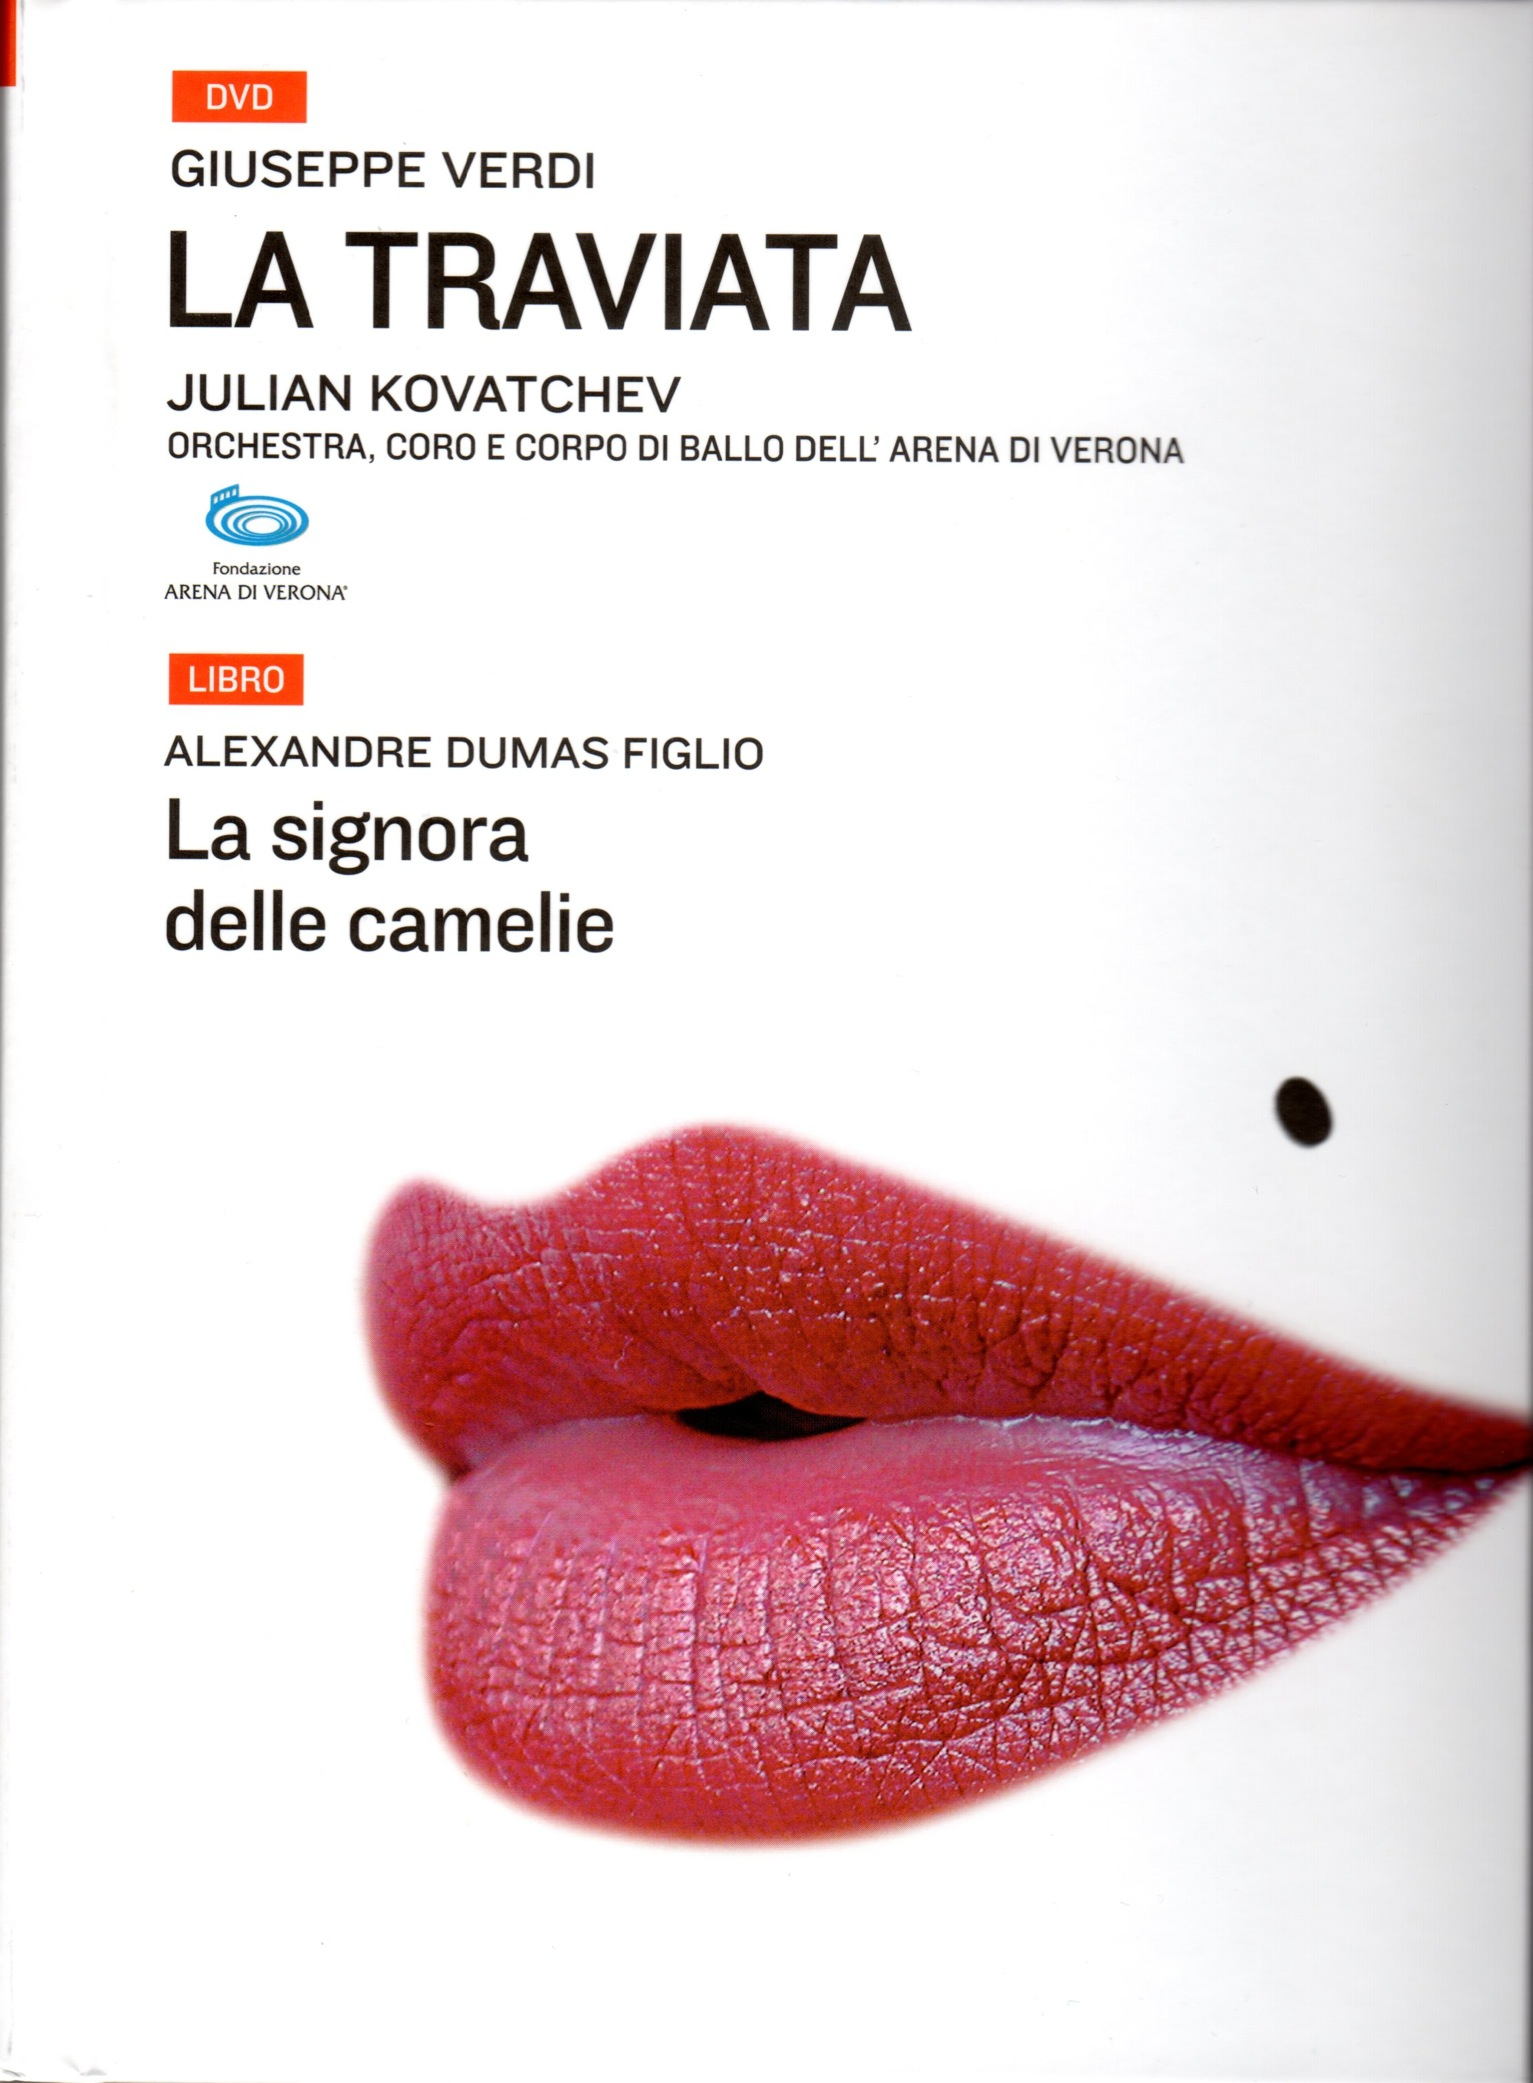 DVD La Traviata (2011)